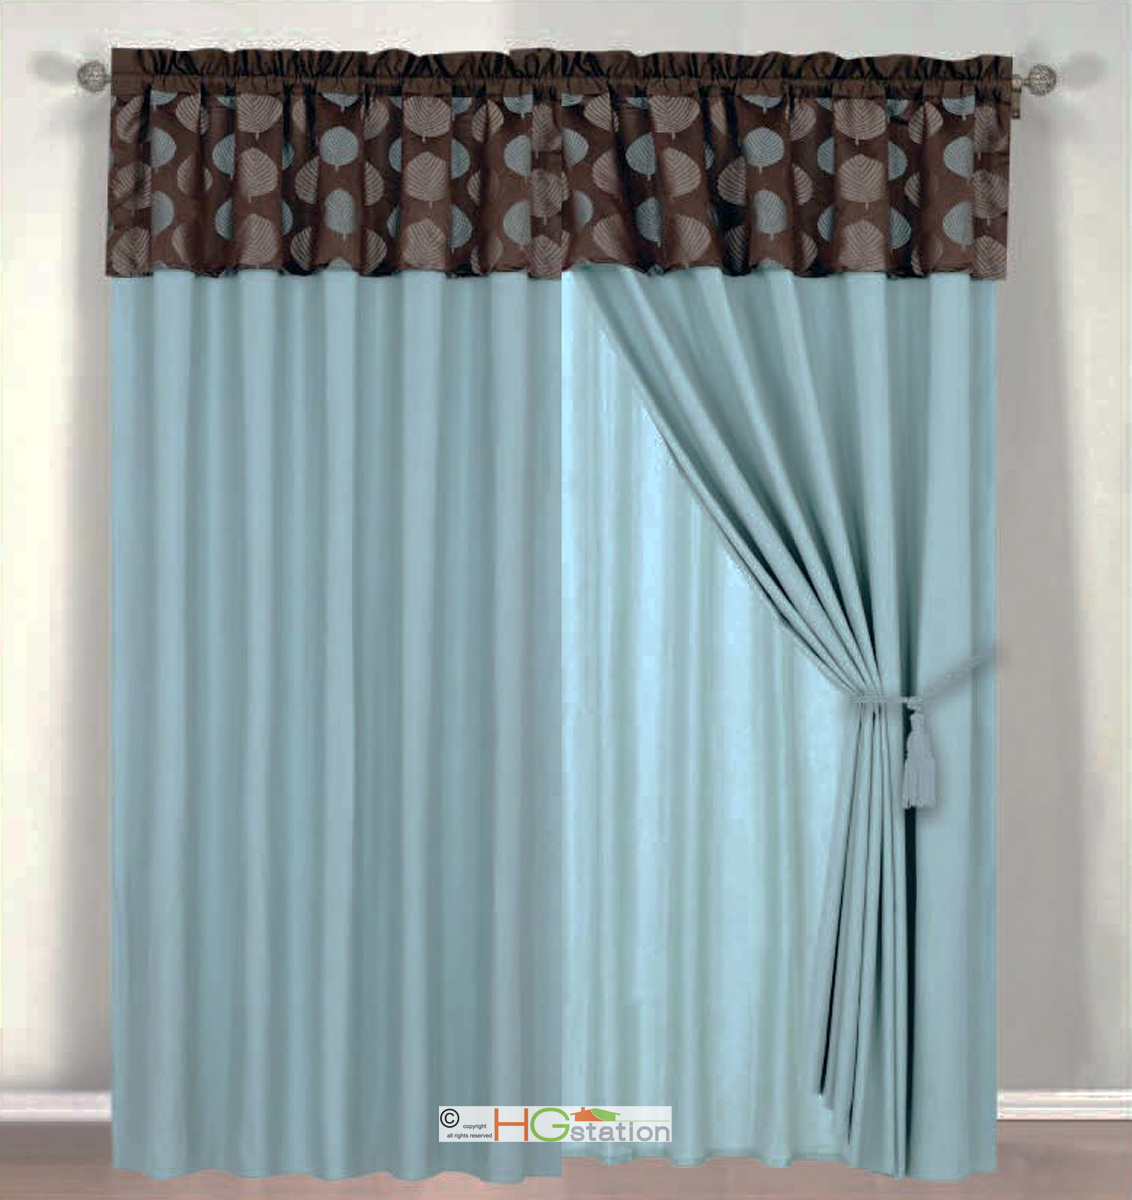 4pc Tropical Palm Leaf Jacquard Curtain Set Slate Blue Brown Valance Drape Liner Ebay